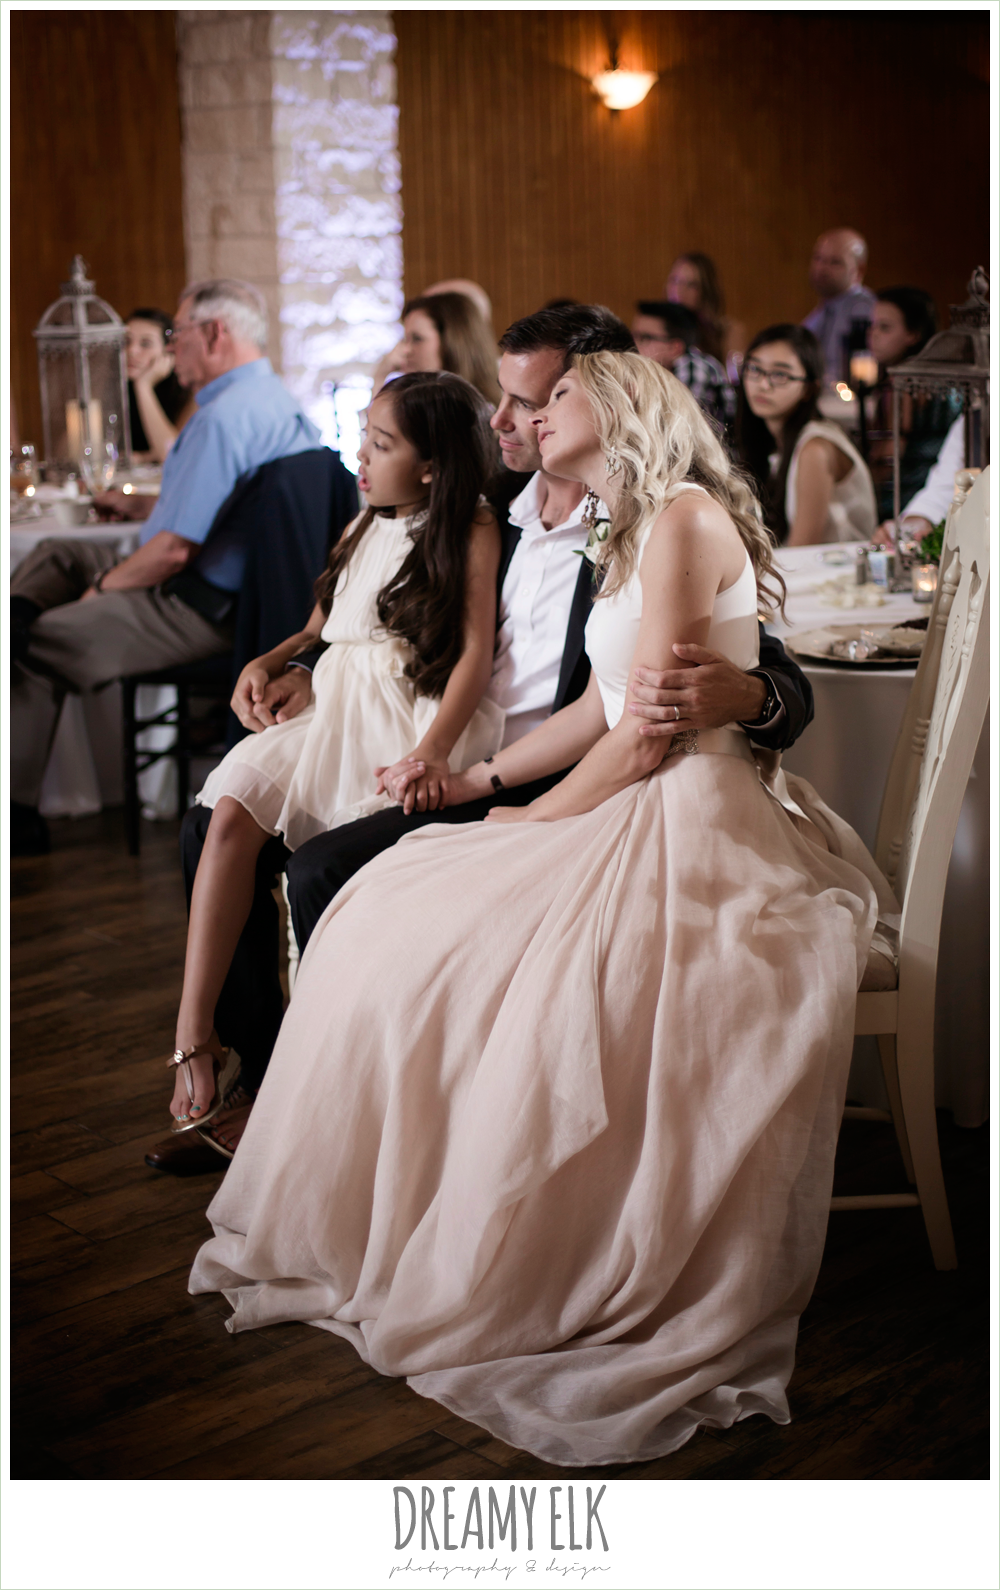 carol hannah kensington halter and blush skirt, bride and groom during wedding reception, july summer morning wedding, ashelynn manor, magnolia, texas {dreamy elk photography and design} photo